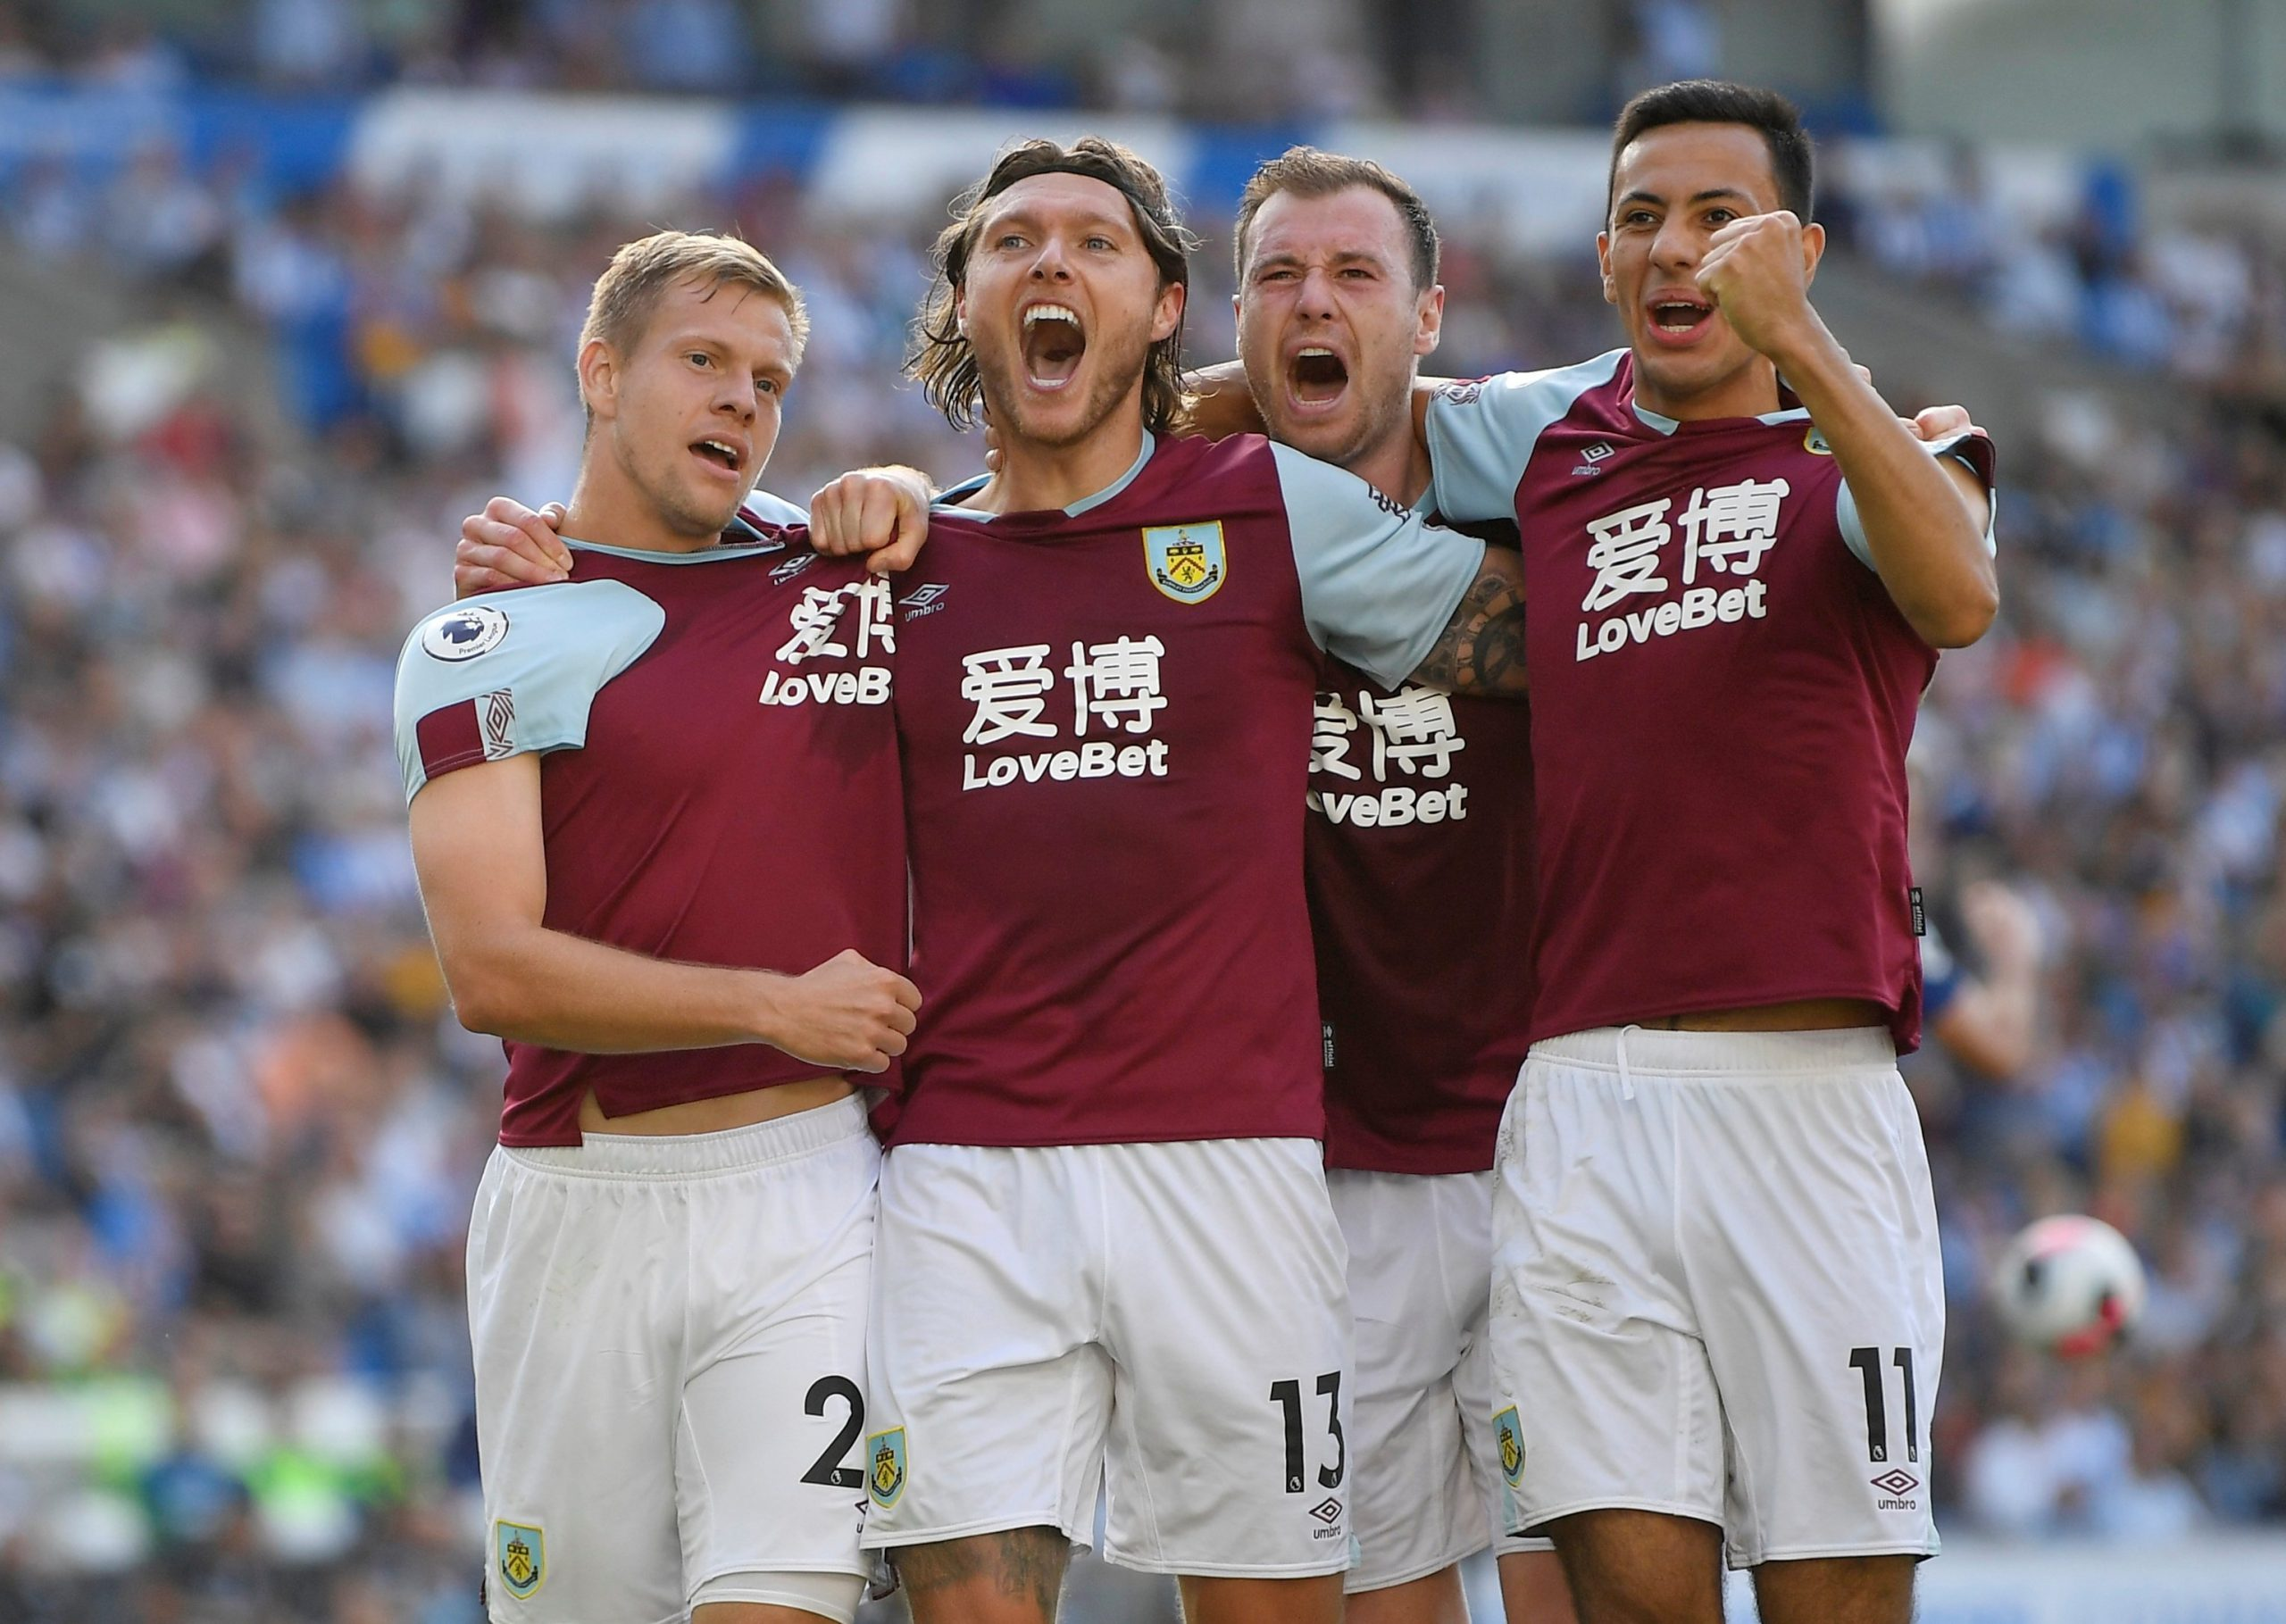 Burnley transfers list 2020? Burnley new player signings